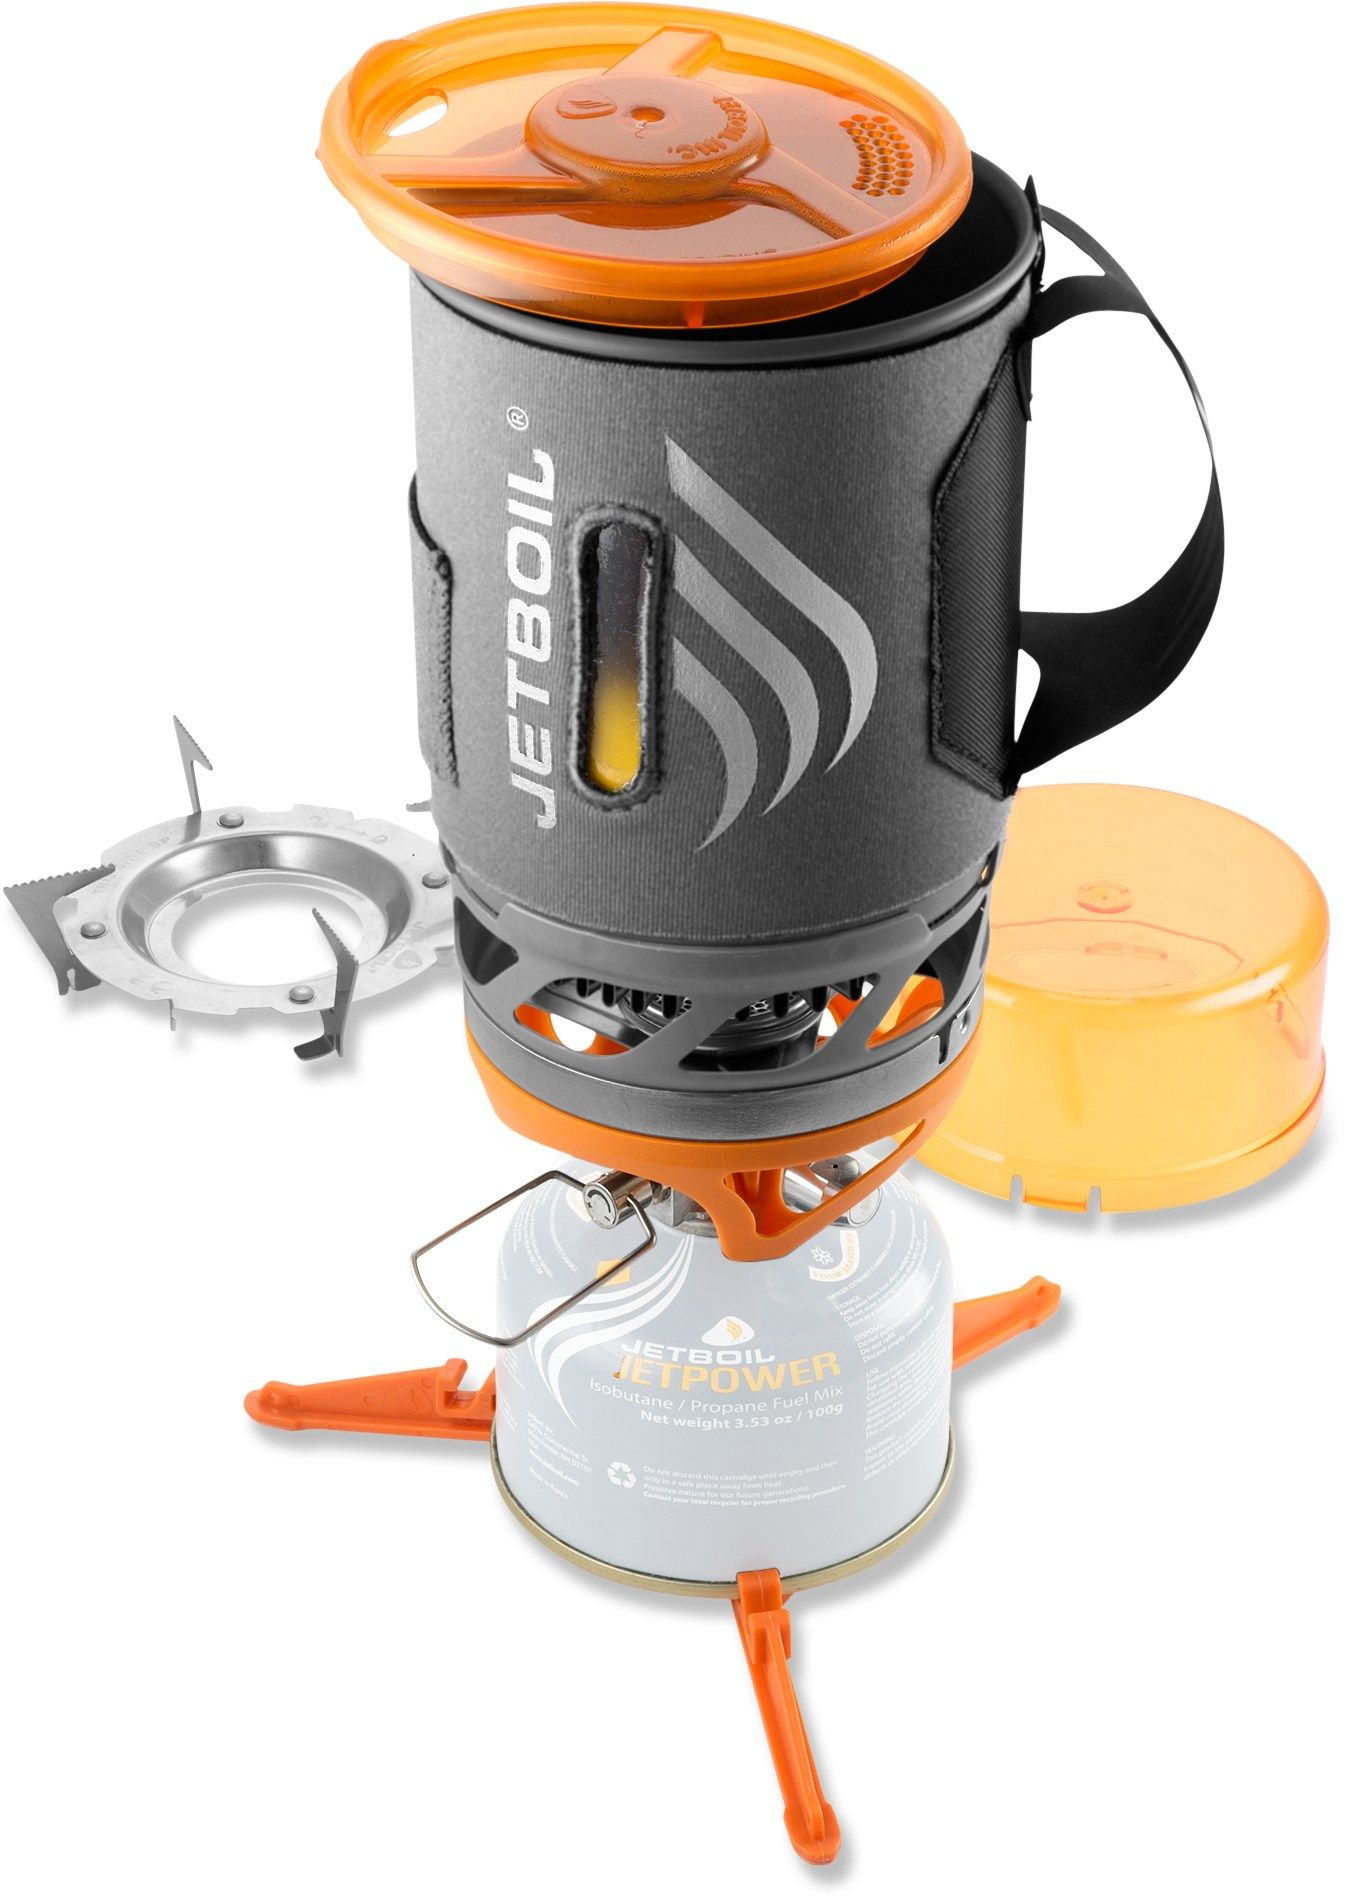 Jetboil Sol Stove Camping coffee, Camping stove, Camping